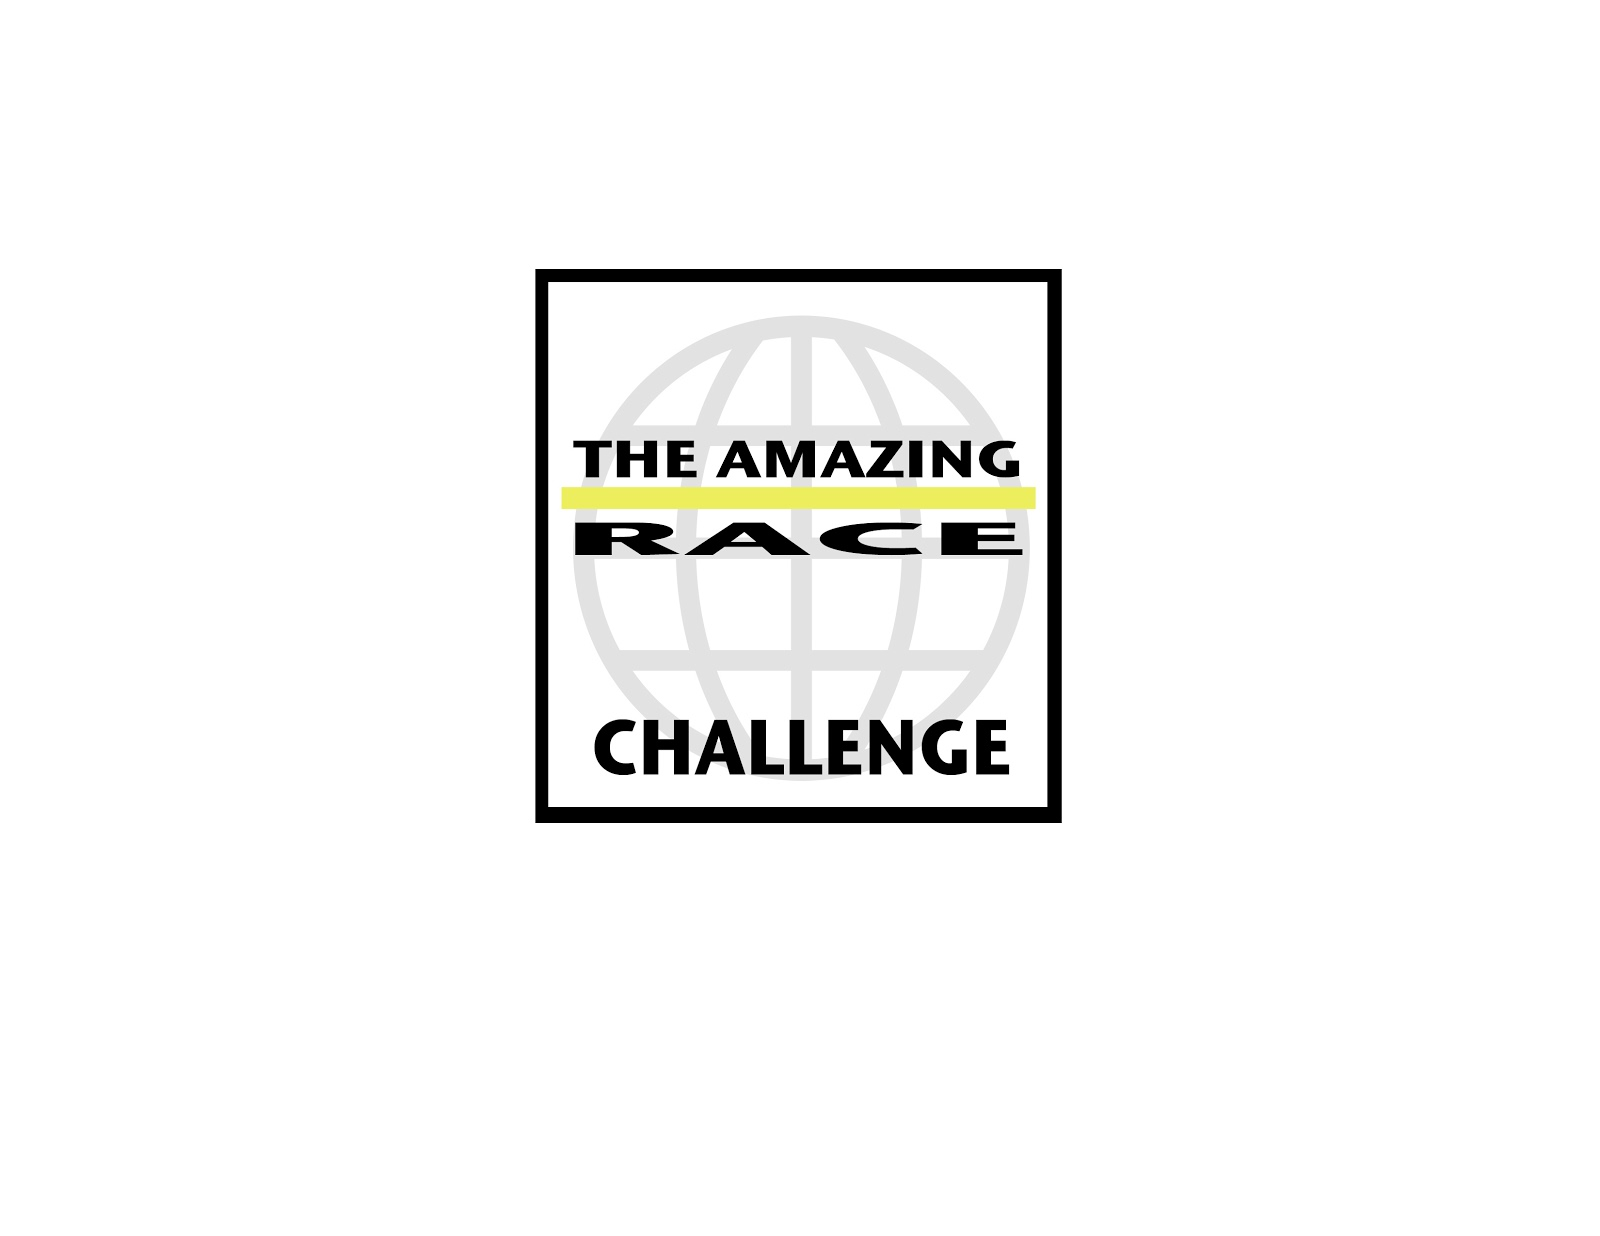 It Was Amazing Race Teen Birthday Party moreover Oi Map Of Ga Cities besides Lightning Mcqueen Coloring Pages likewise 299067231480740223 together with The Amazing Race Literacy Version. on amazing race clues